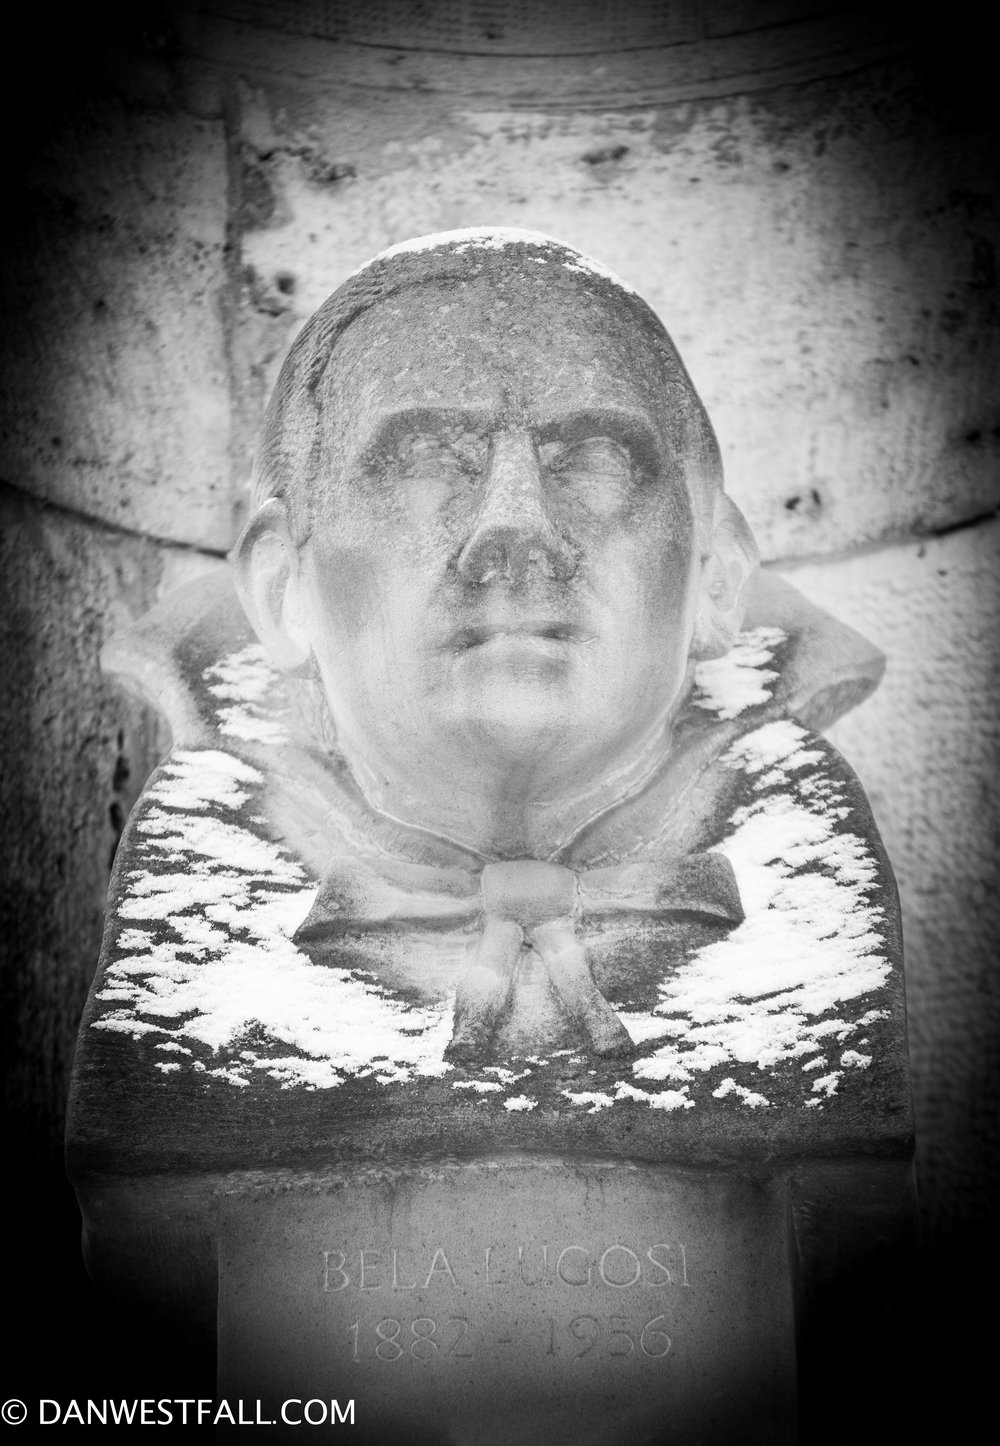 Only public sculpture of Bela Lugosi. Shot with snow. Budapest #0935